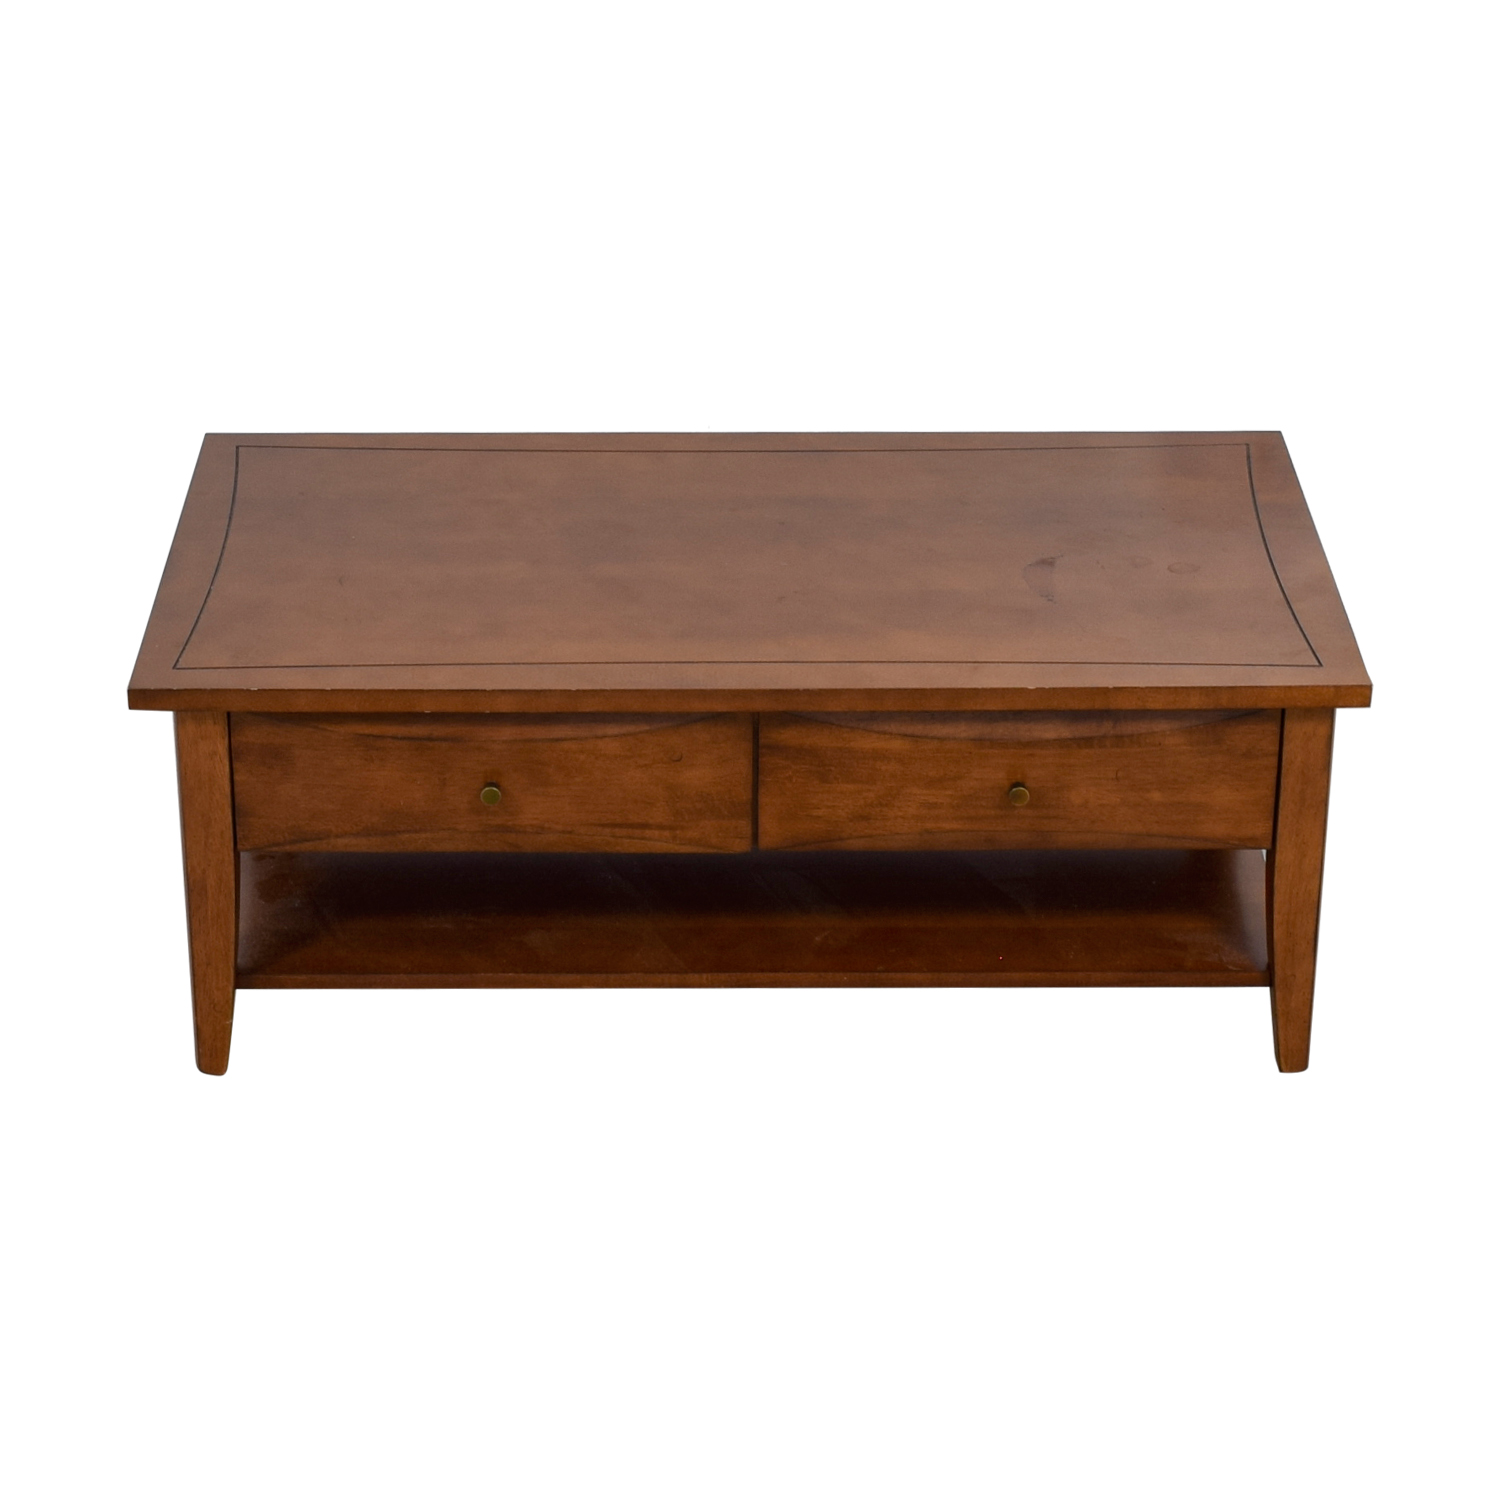 Coaster Two-Drawer Wood Coffee Table sale